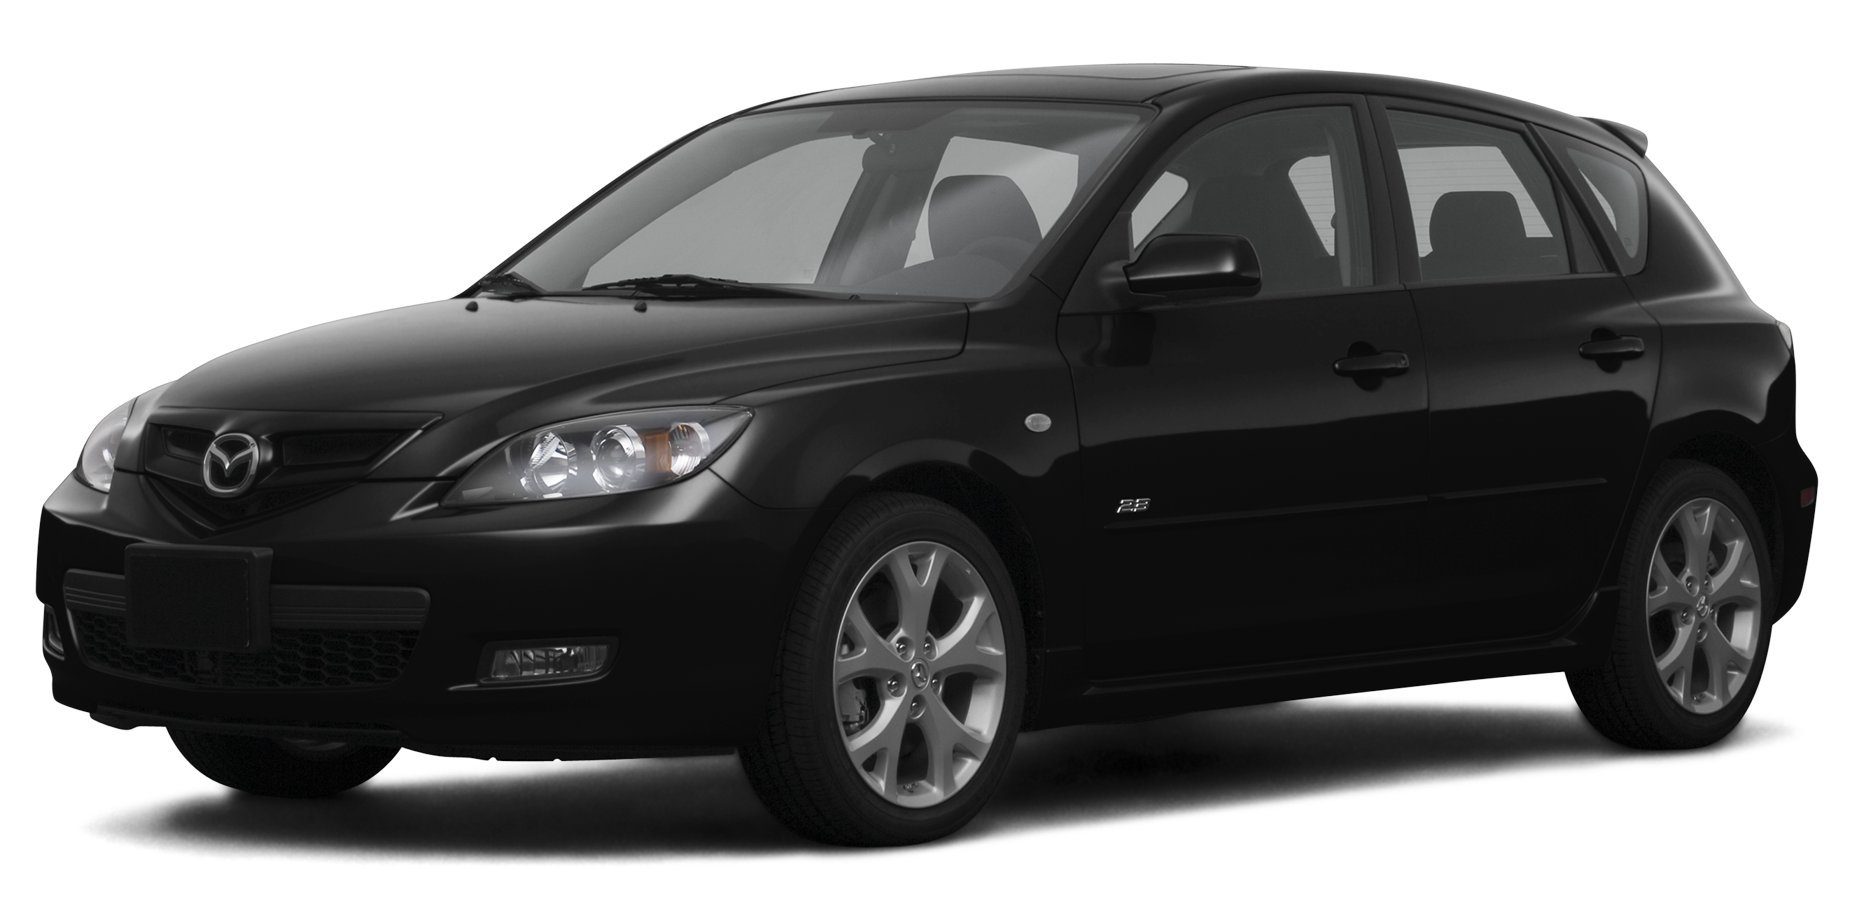 ... 2008 Mazda 3 s Sport, 5-Door Hatchback Manual Transmission. 2008 Ford  Fusion ...